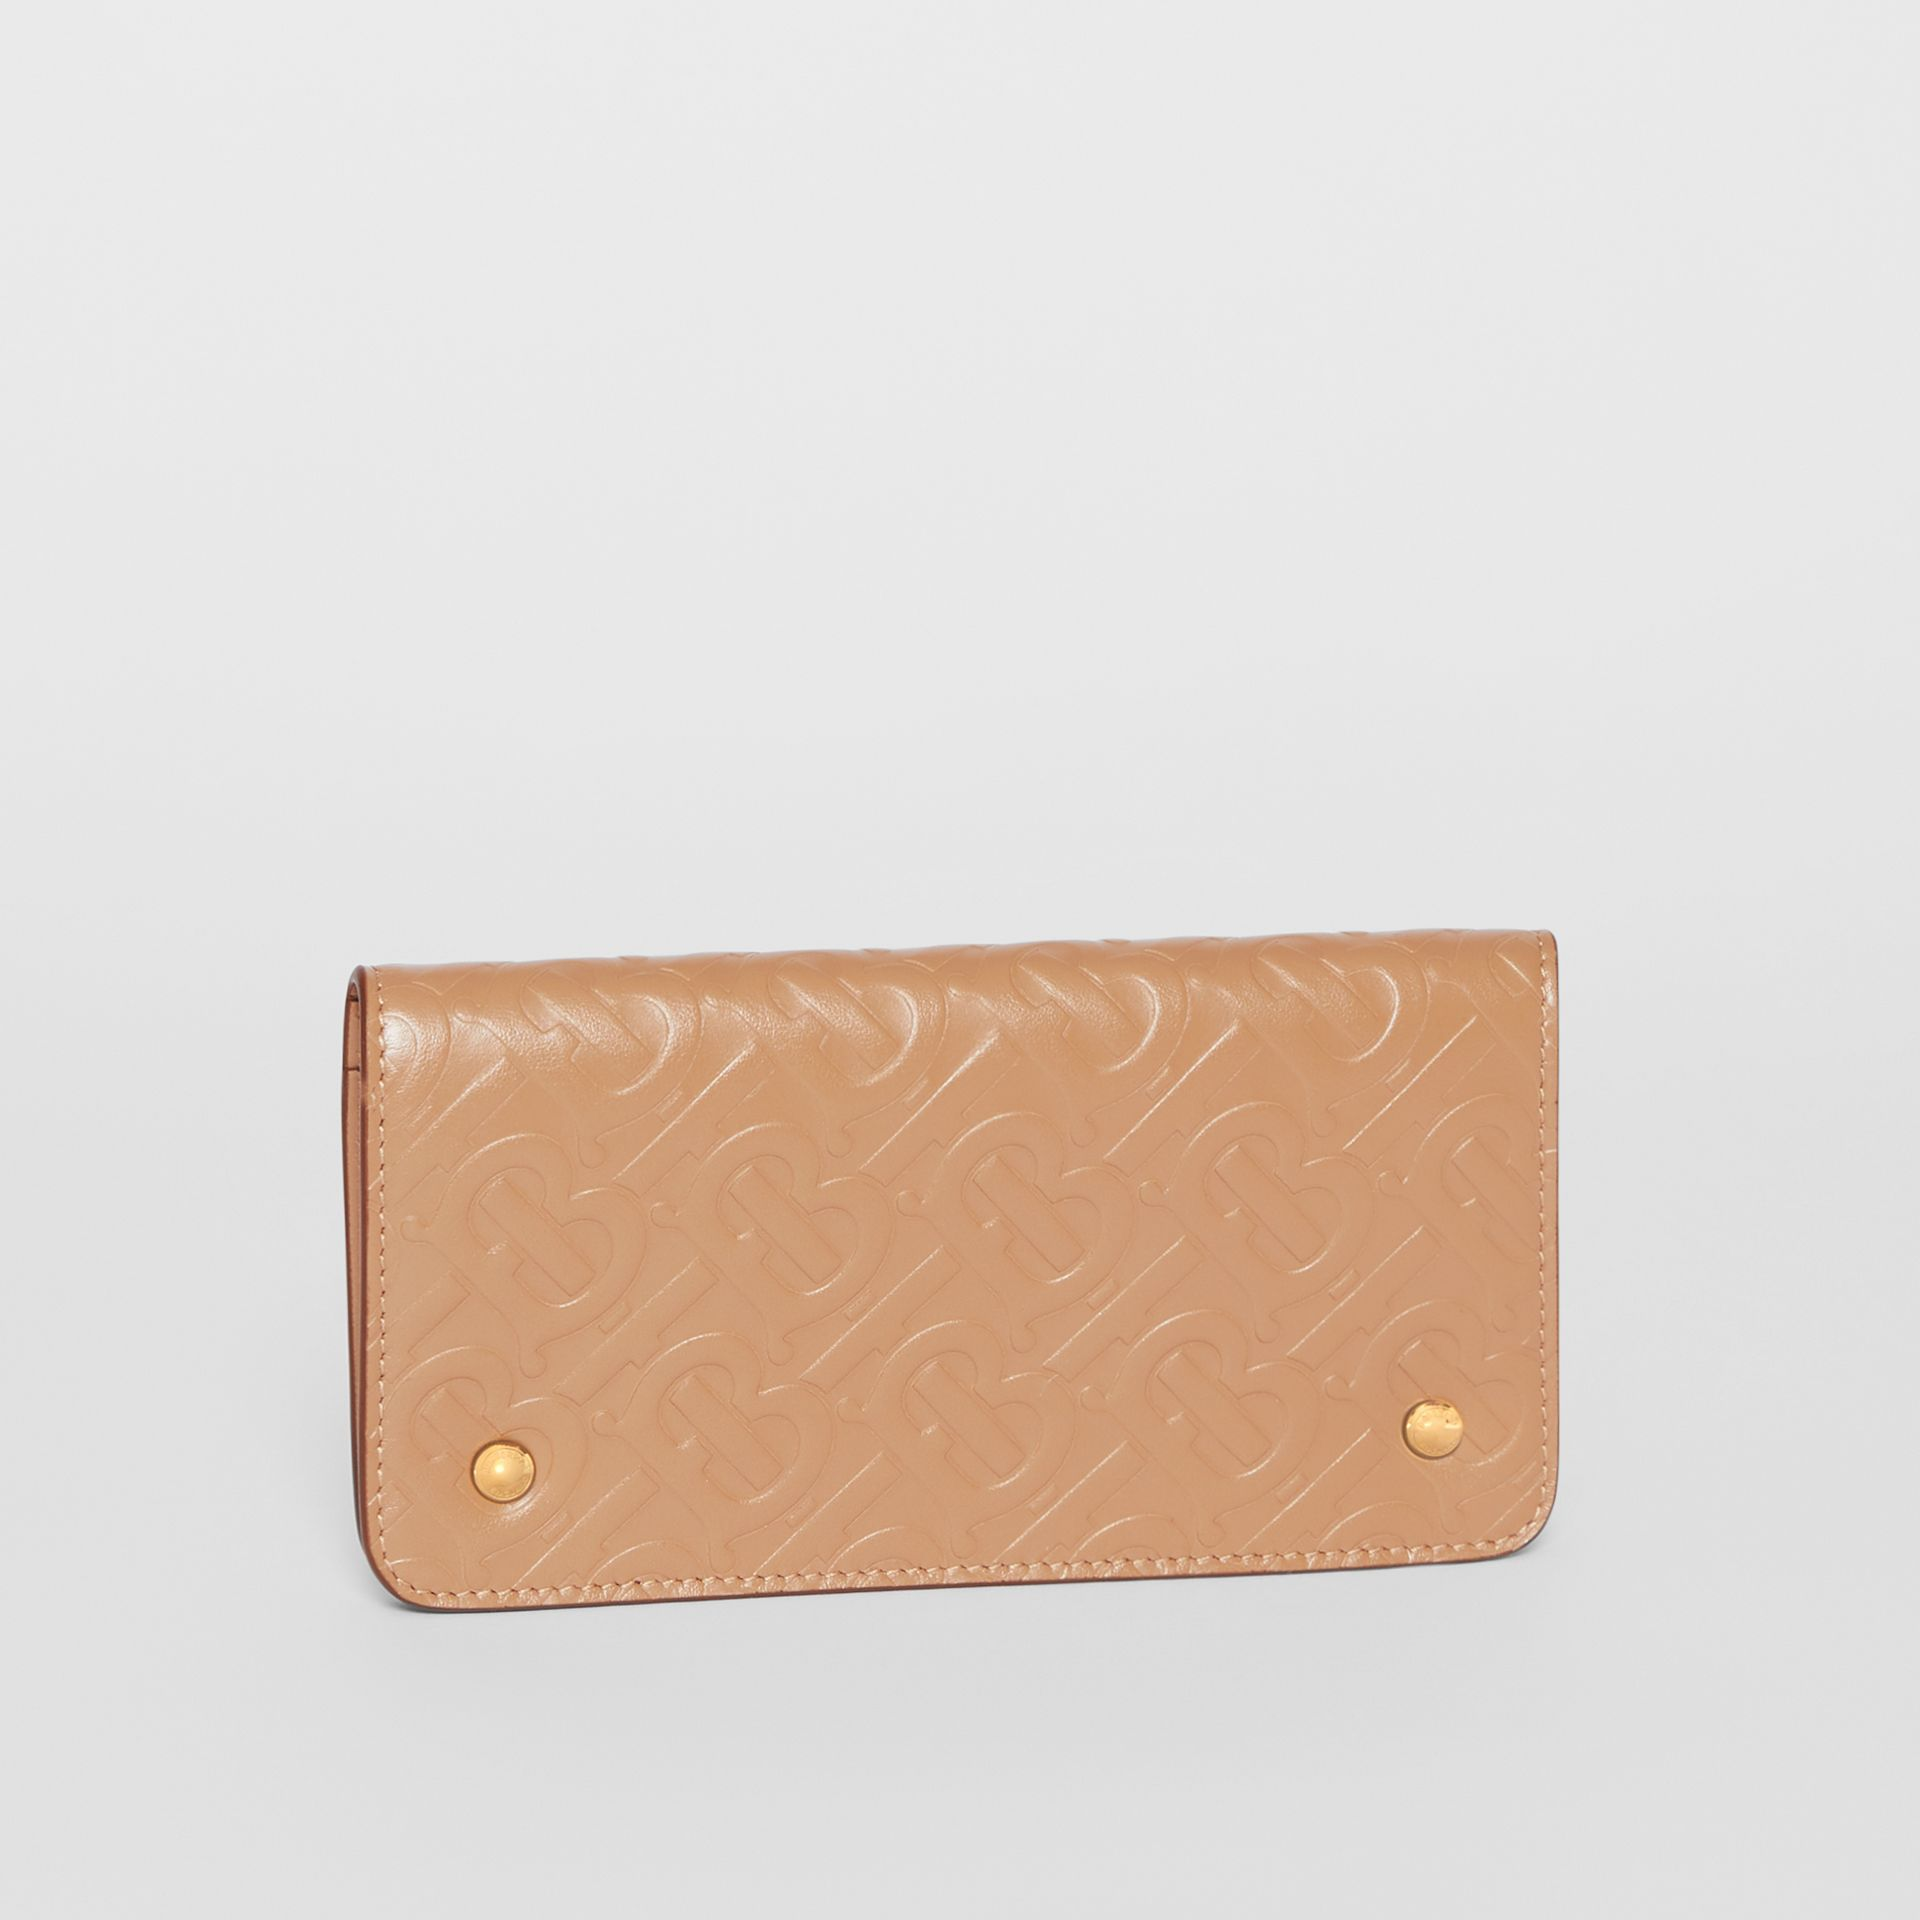 Monogram Leather Phone Wallet in Light Camel - Women | Burberry - gallery image 4